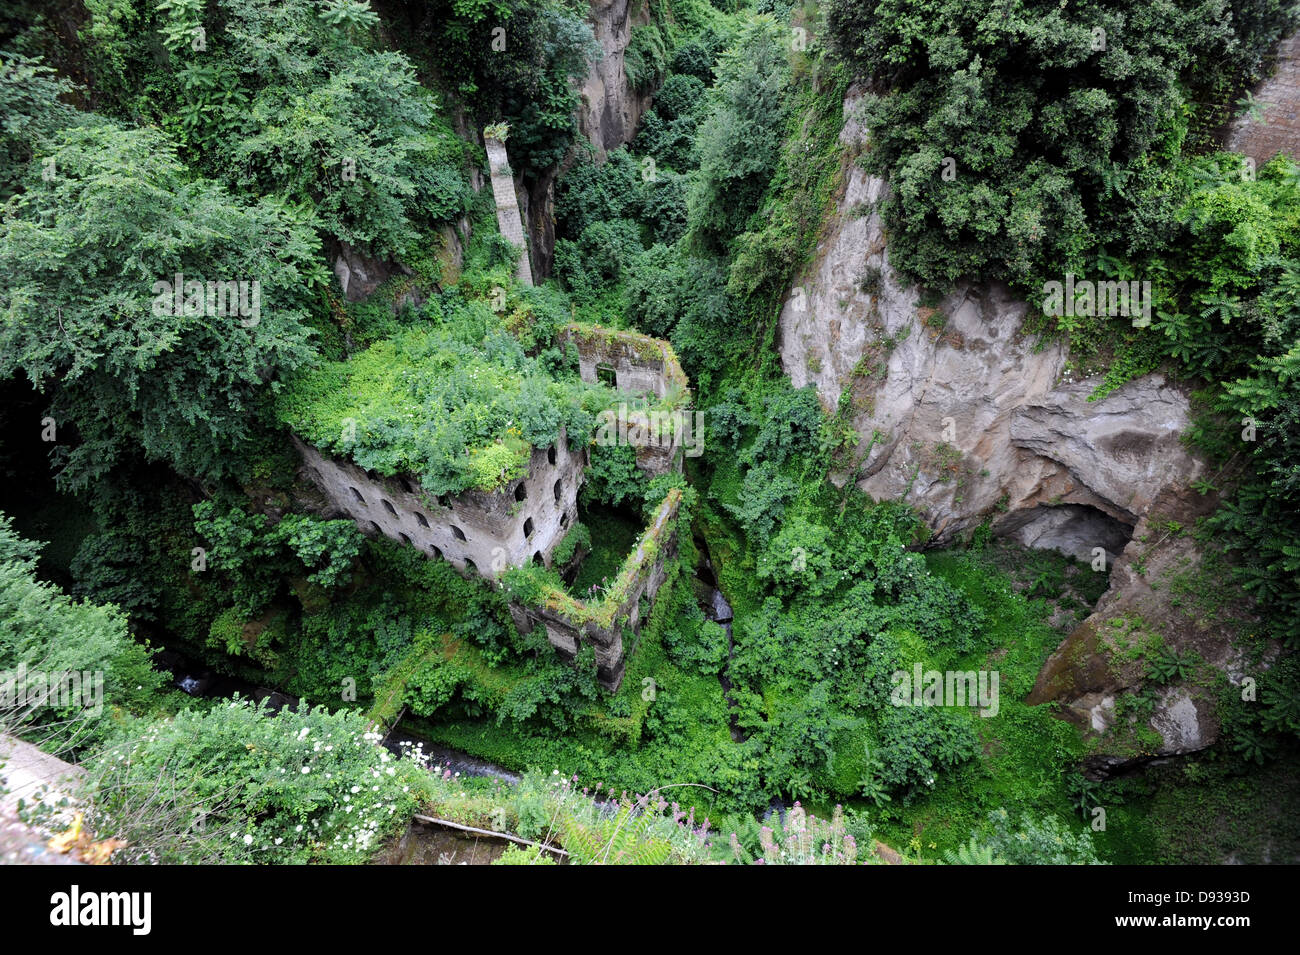 View of the Valley of the Mills an old abandoned flour mill in Sorrento - Stock Image